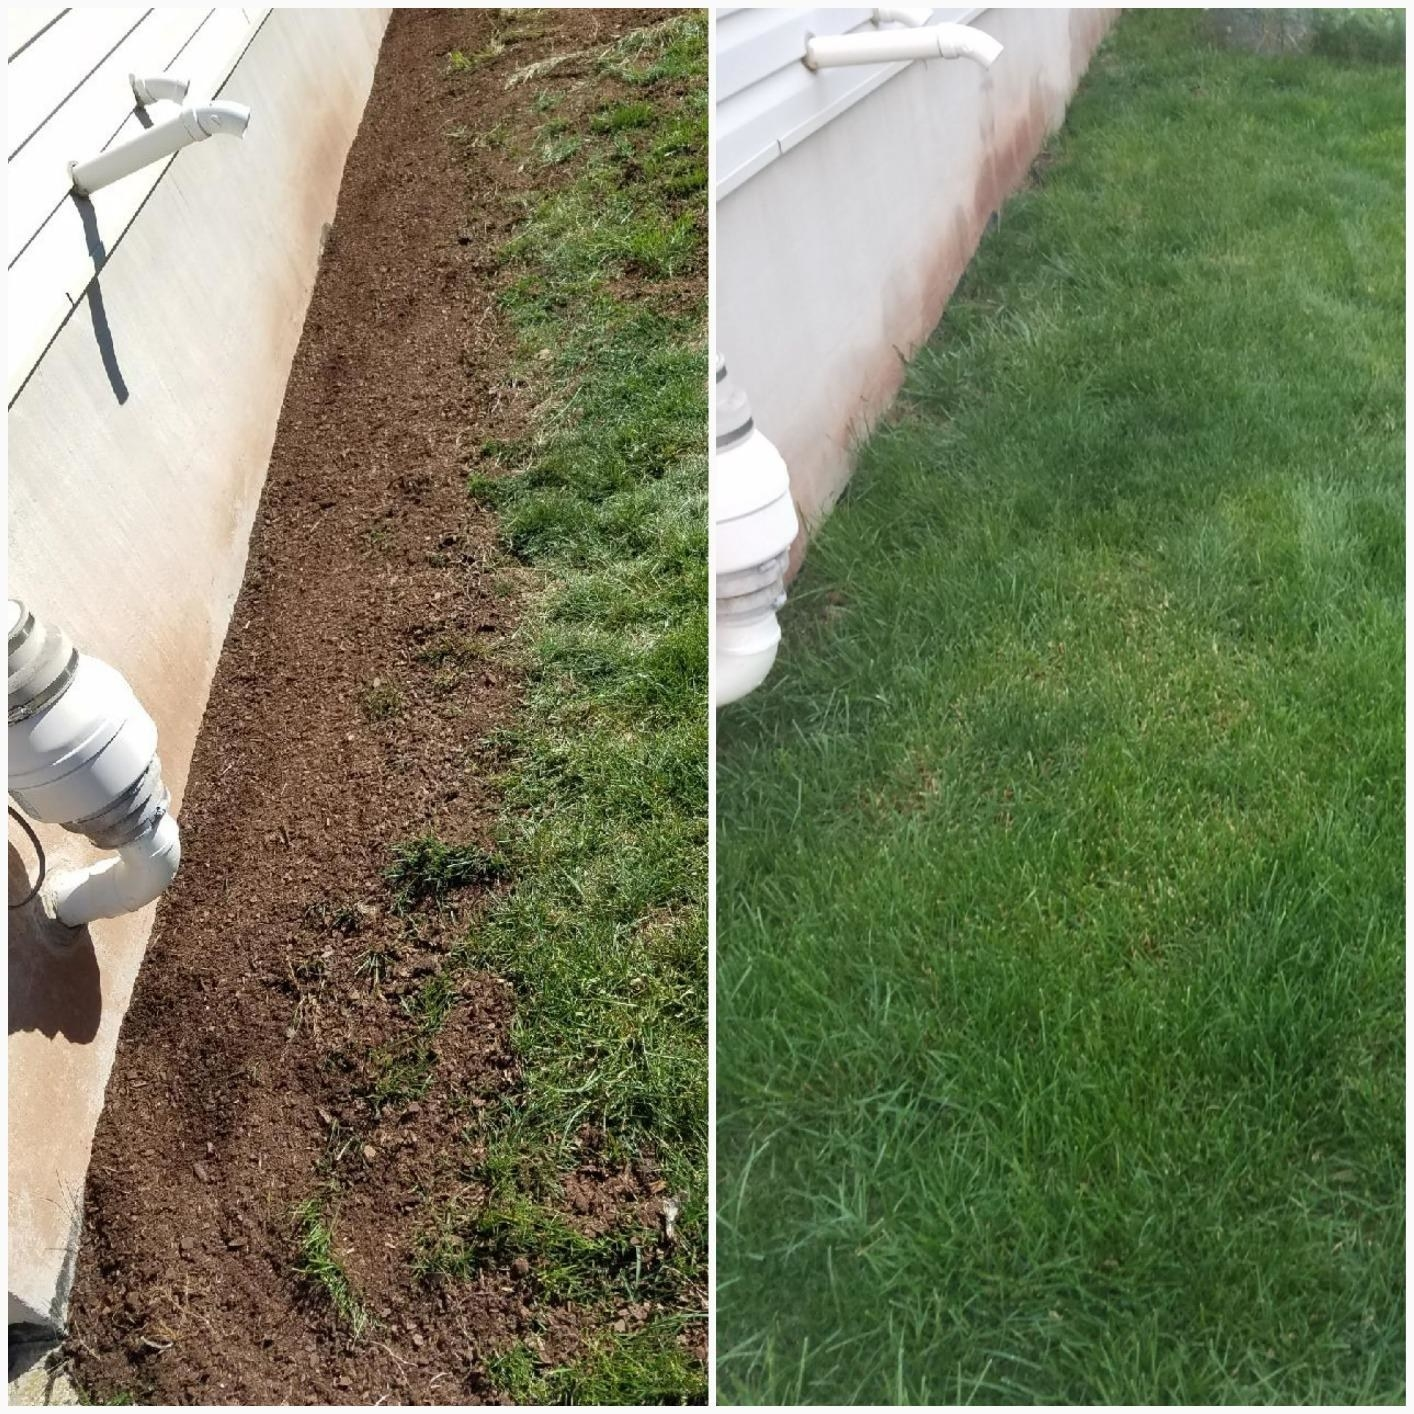 Before and after of reviewer's yard after using product